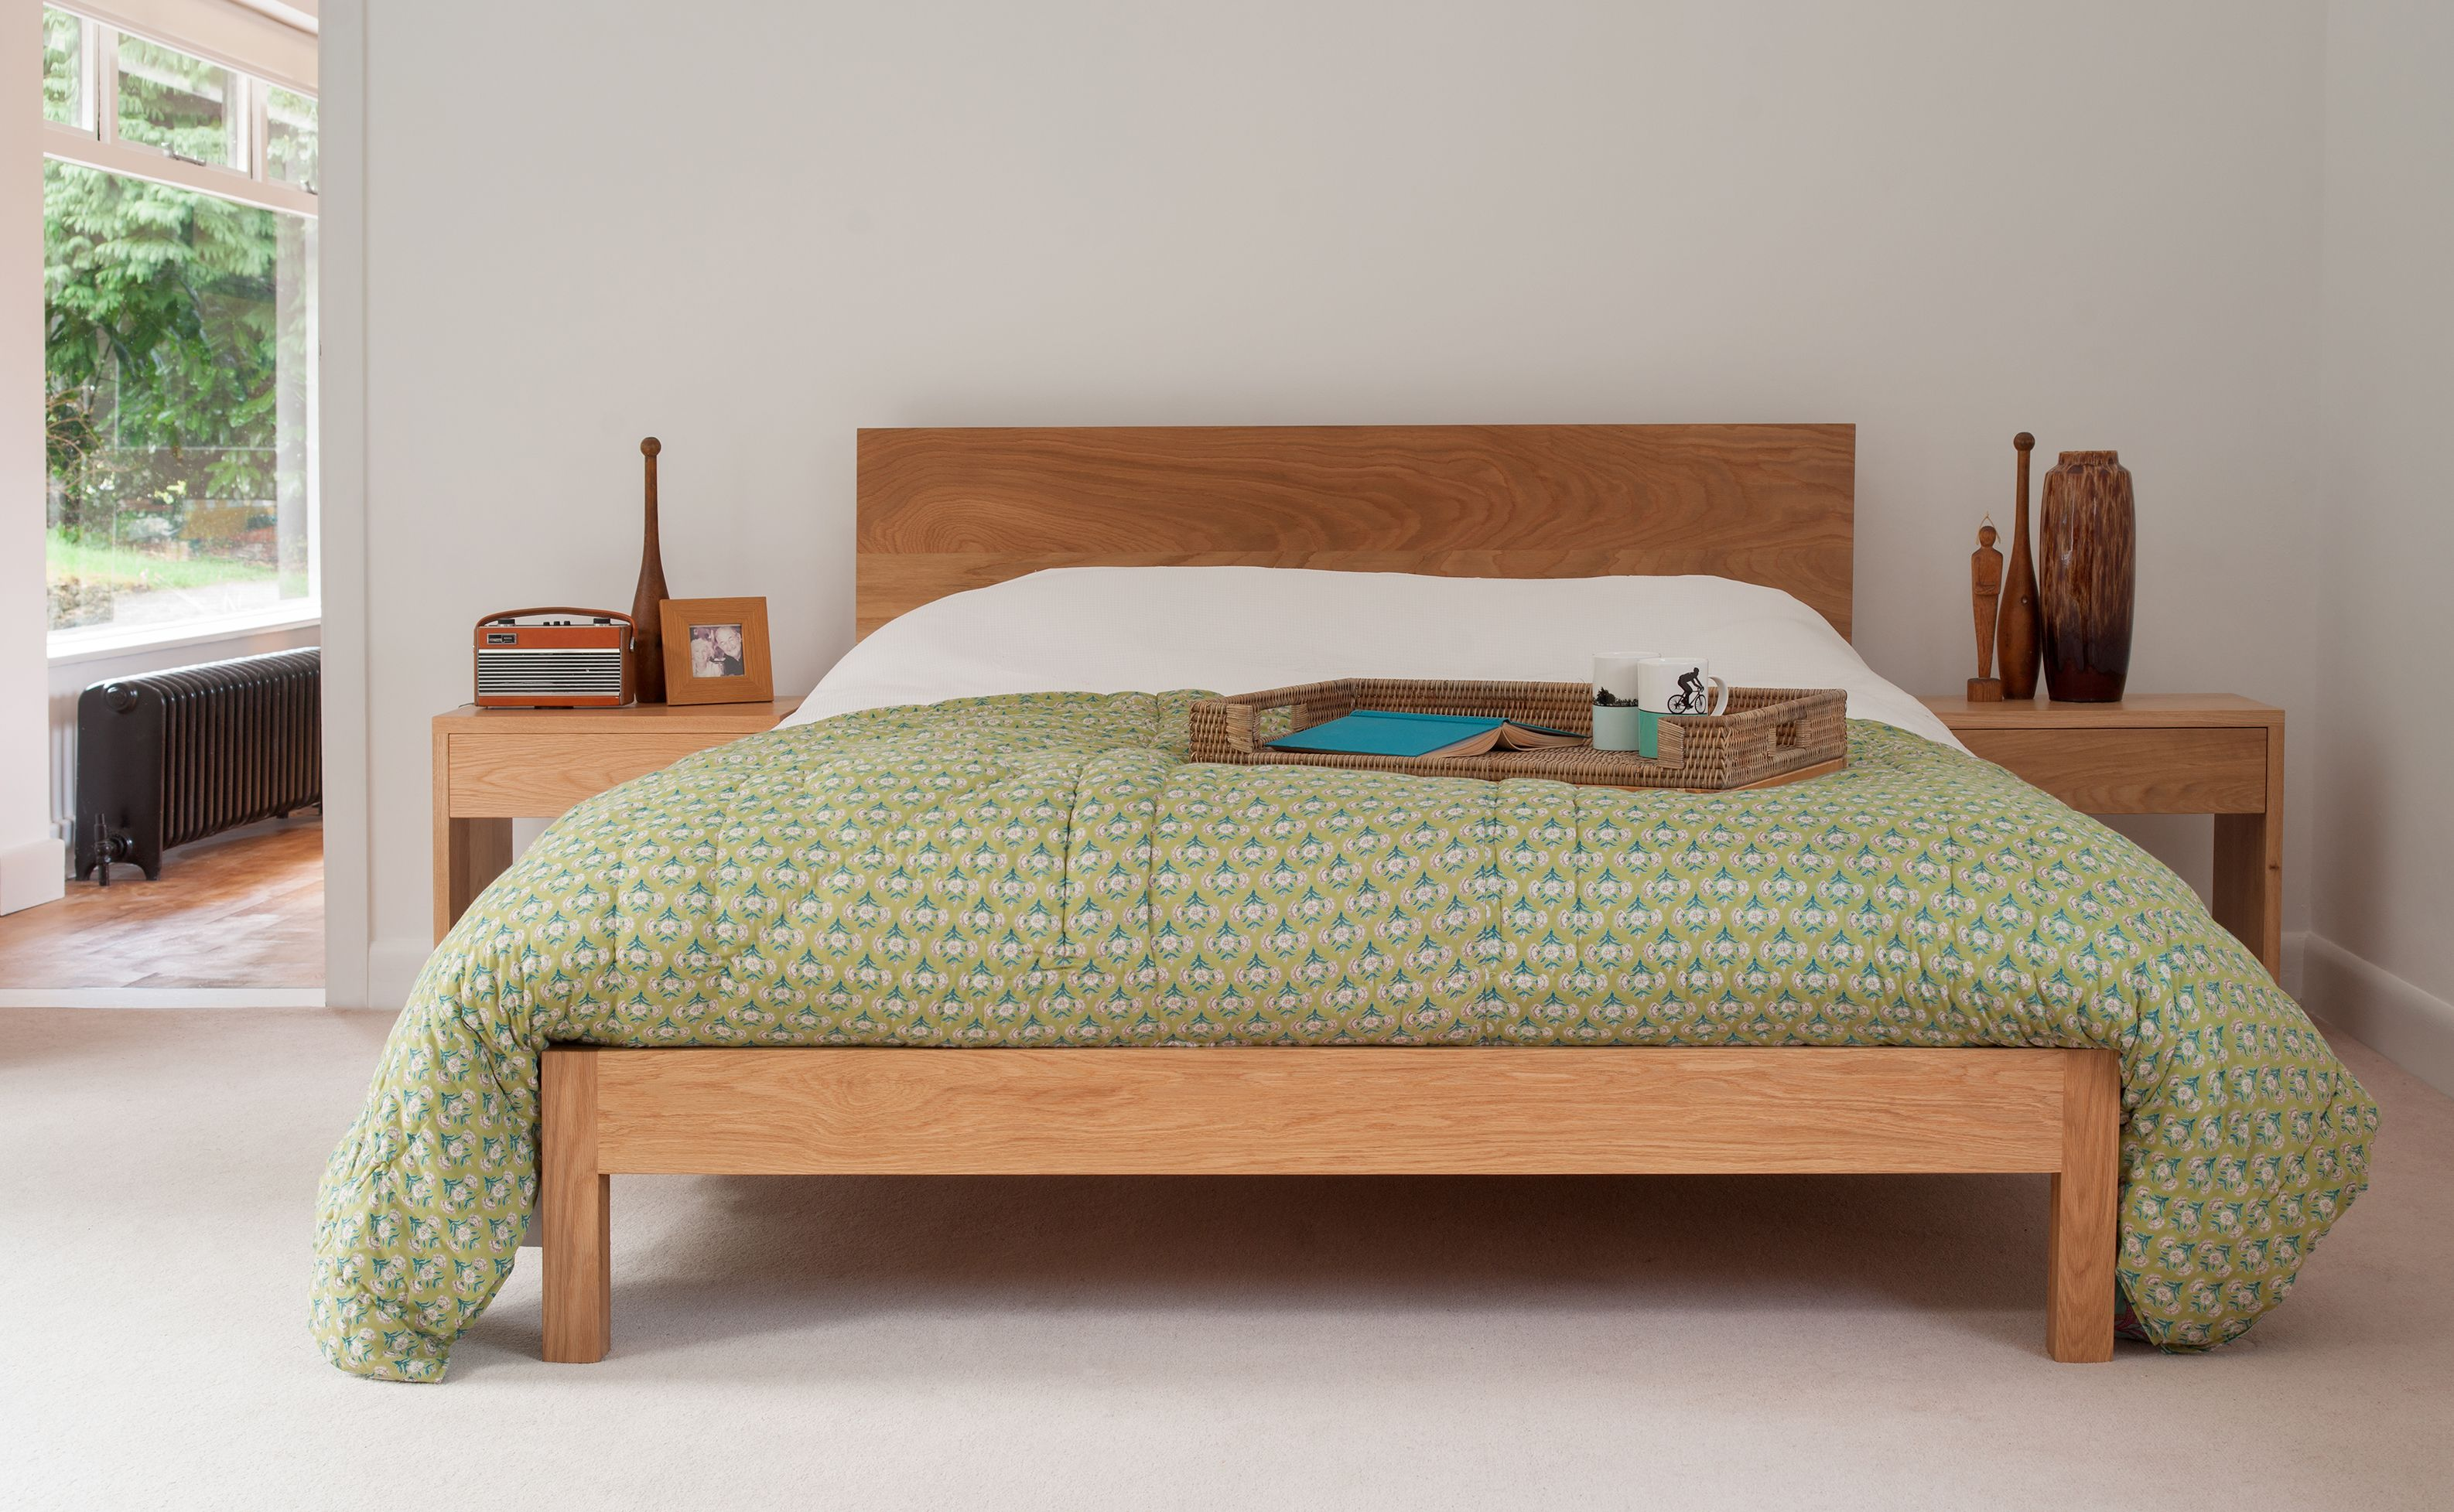 Contemporary Oak Bedroom Furniture | contemporary woodworking ...